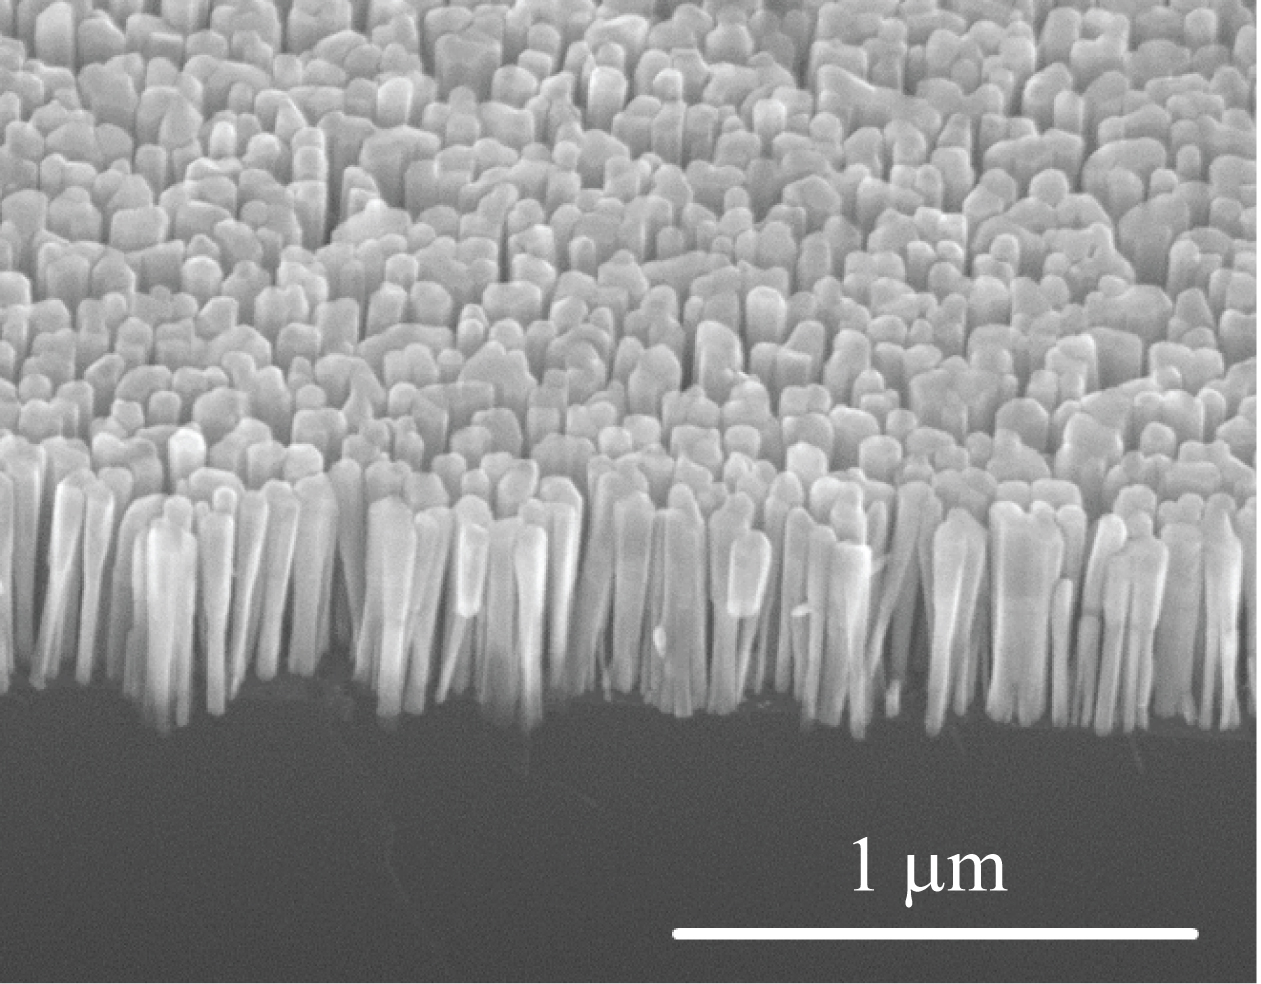 Nanowires growing on silicon. Courtesy of Pallab Bhattacharya